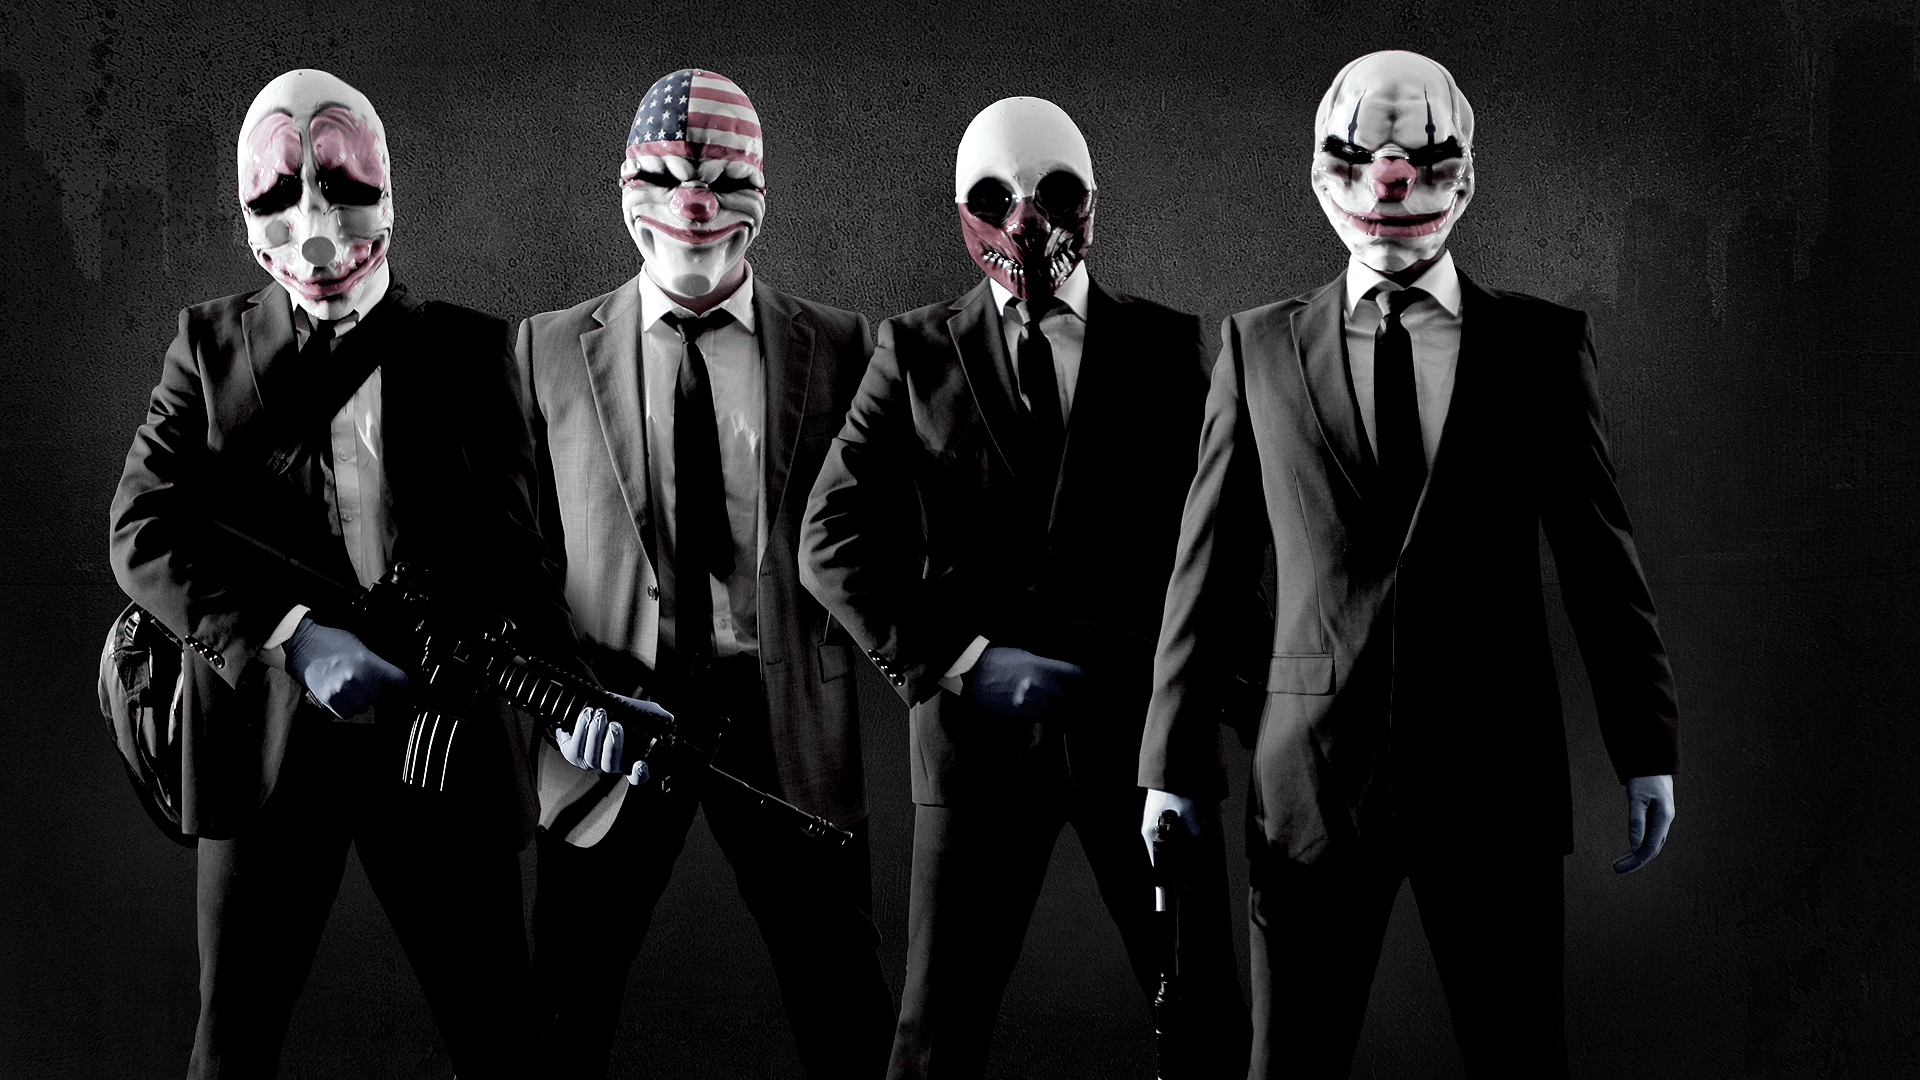 Payday 2 Wallpapers - Top Free Payday 2 Backgrounds - WallpaperAccess